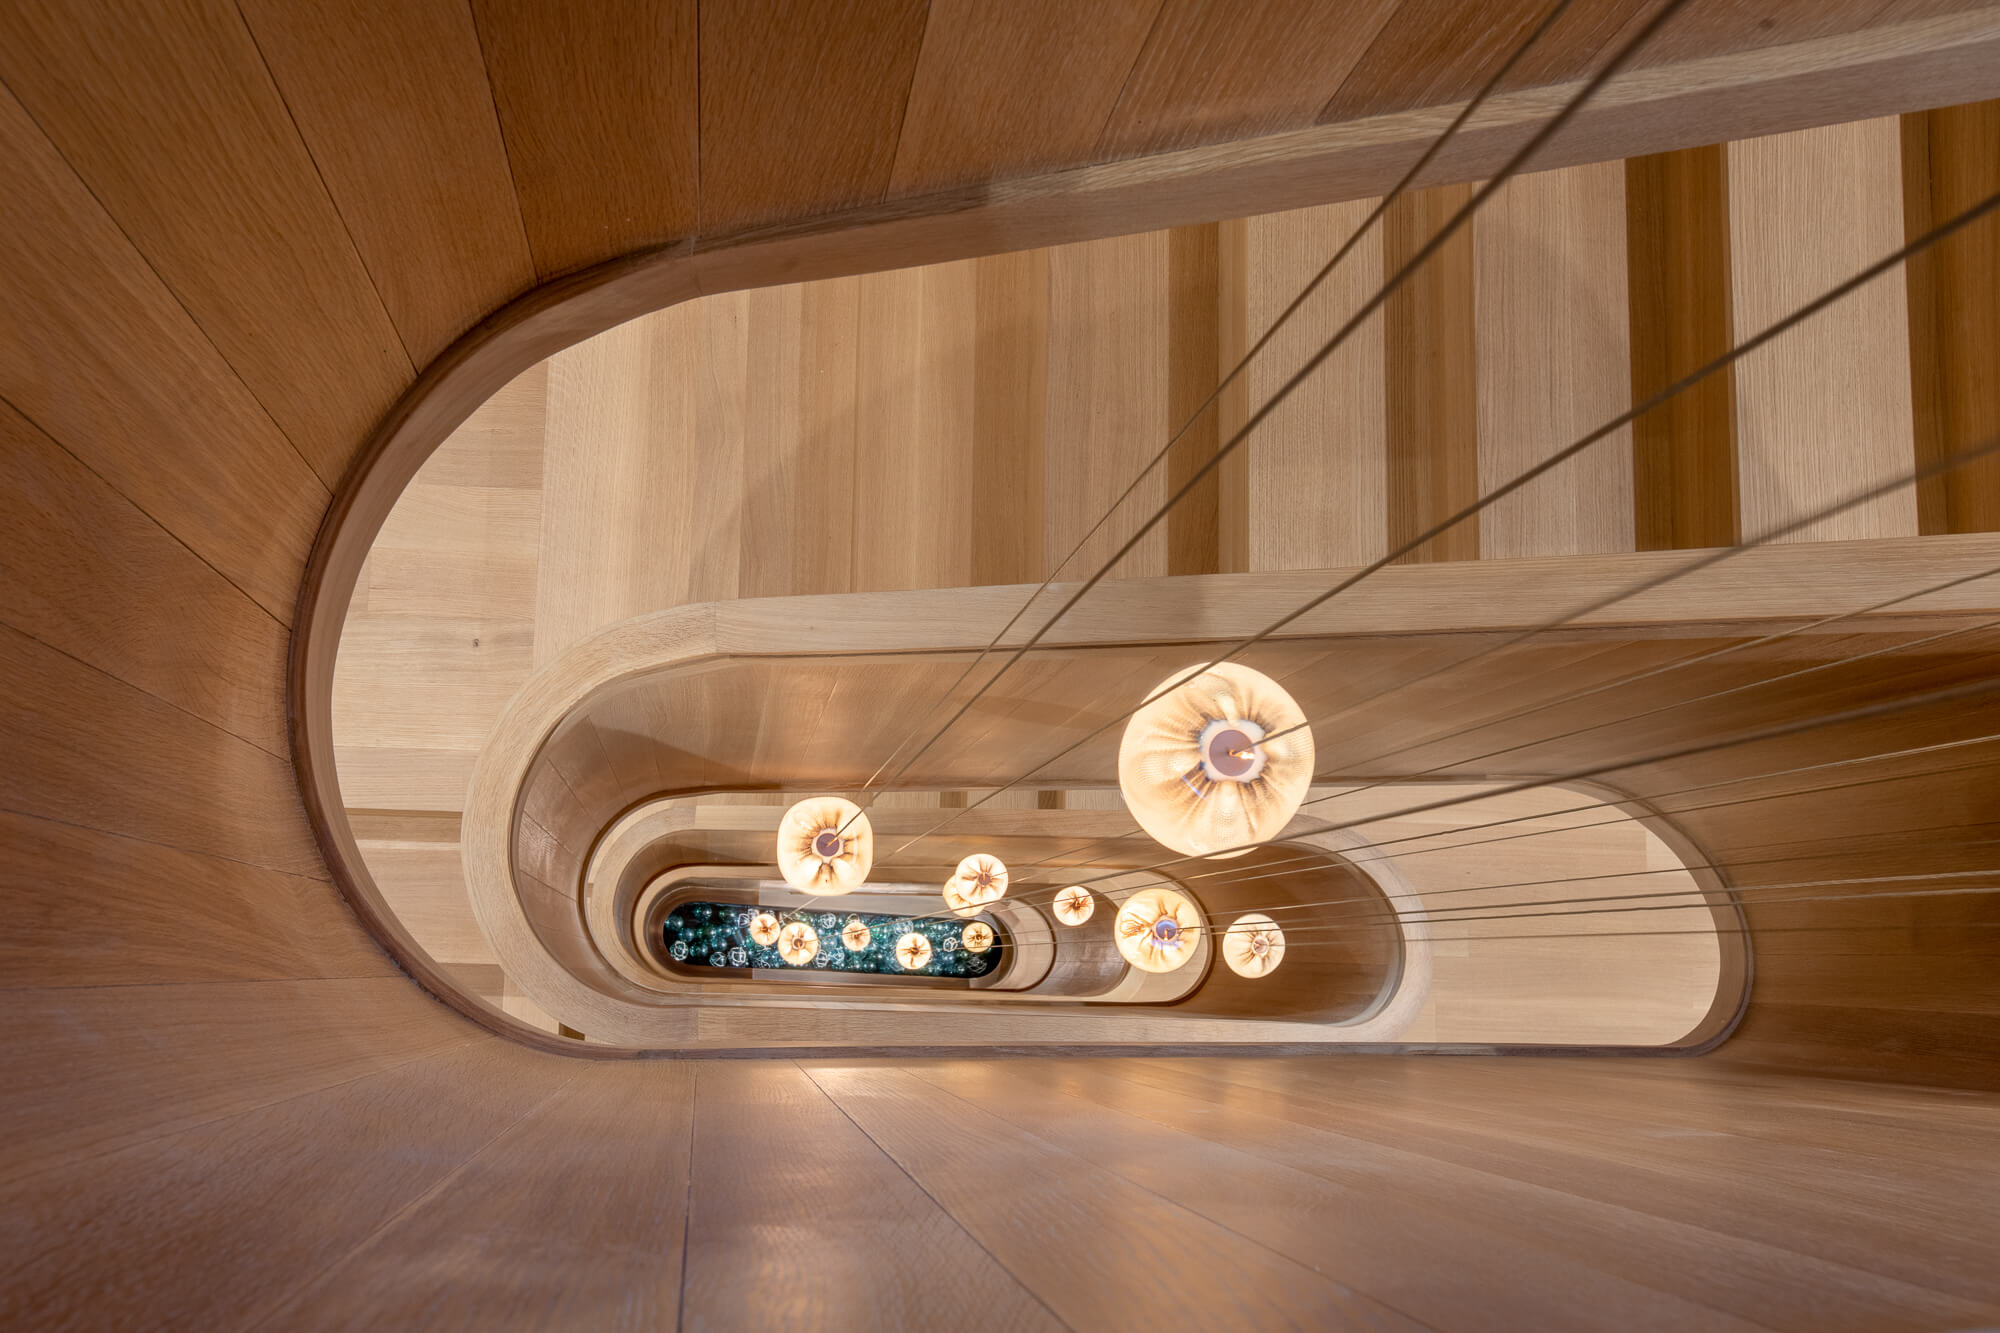 View down the middle of a spiraling wooden staircase.